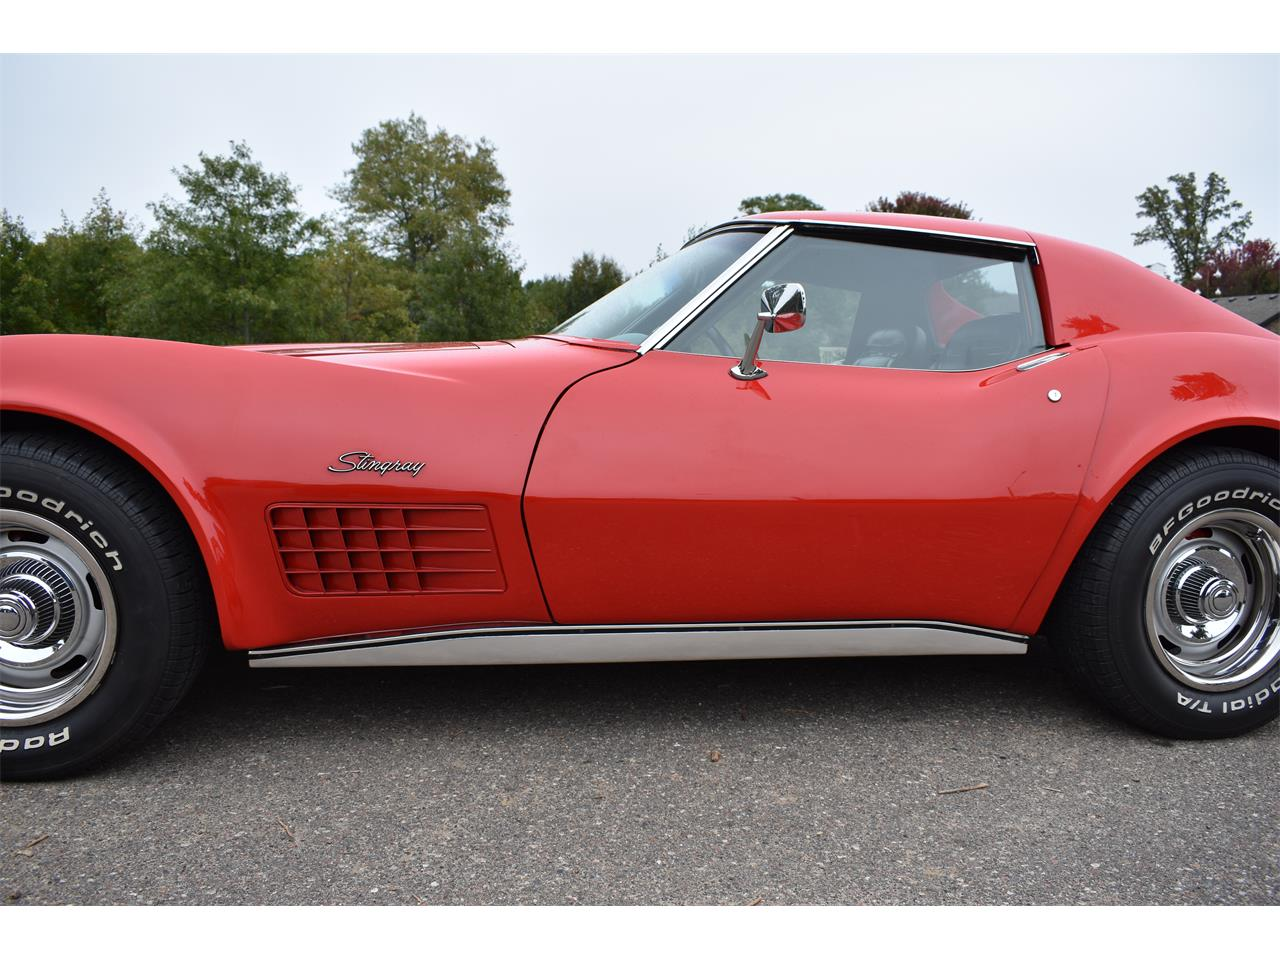 Large Picture of Classic 1972 Corvette located in Little Falls Minnesota Offered by a Private Seller - OMCE